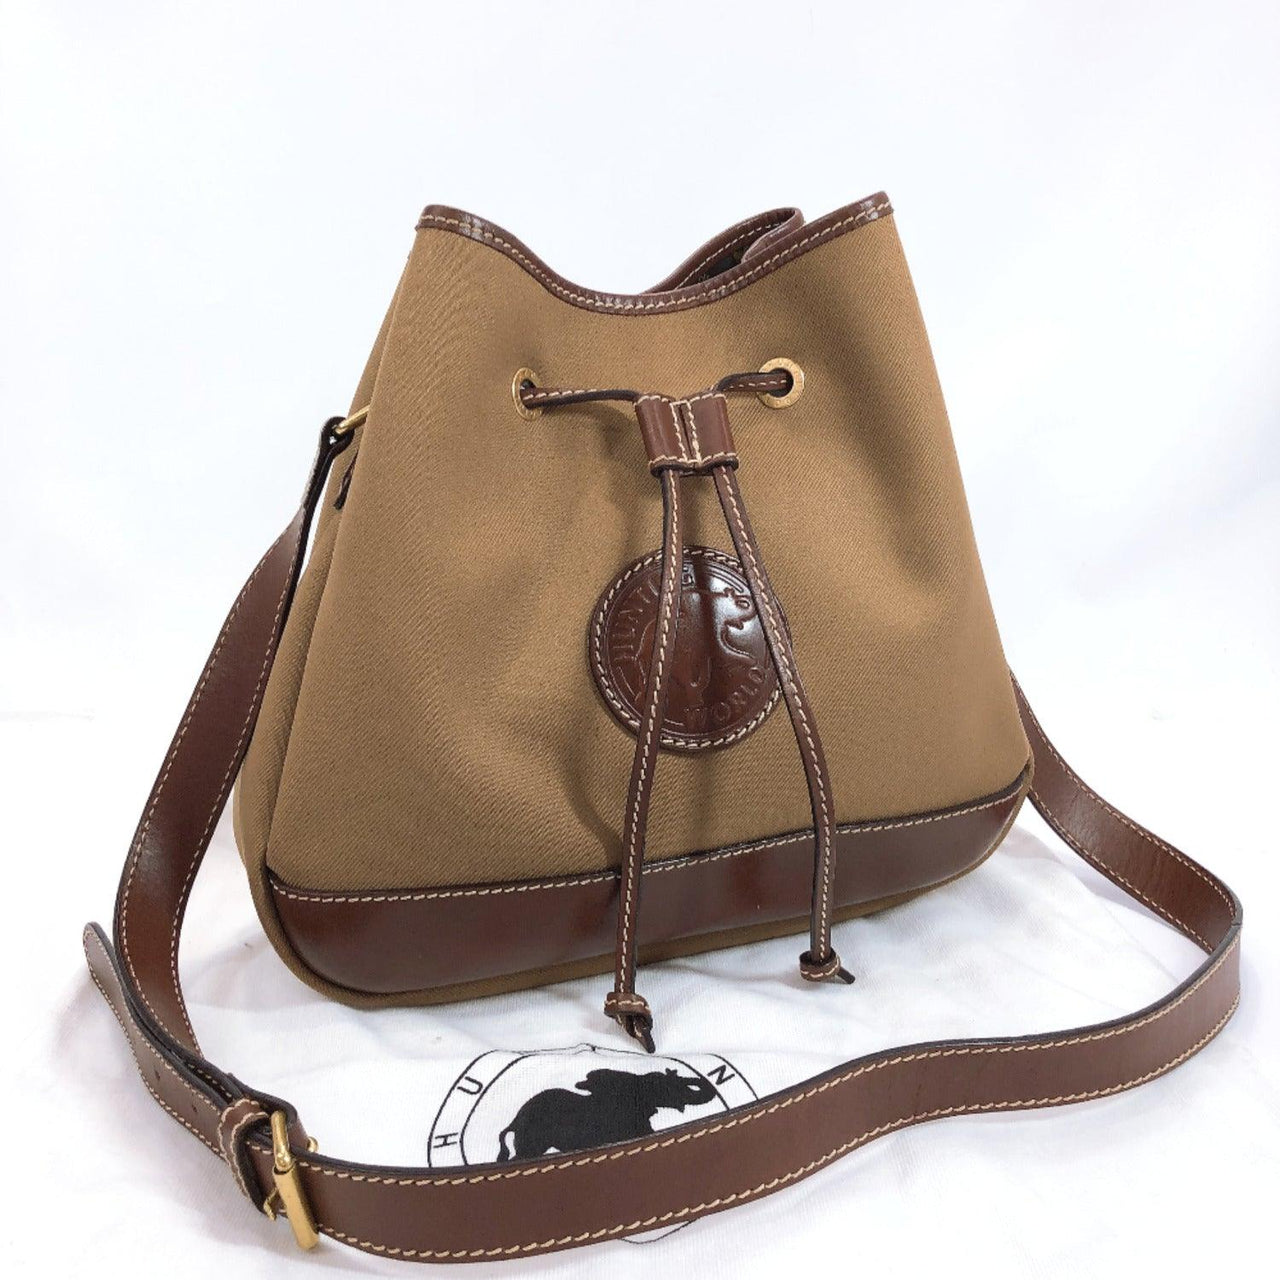 HUNTING WORLD Shoulder Bag drawtring type canvas/leather khaki Brown Women Used